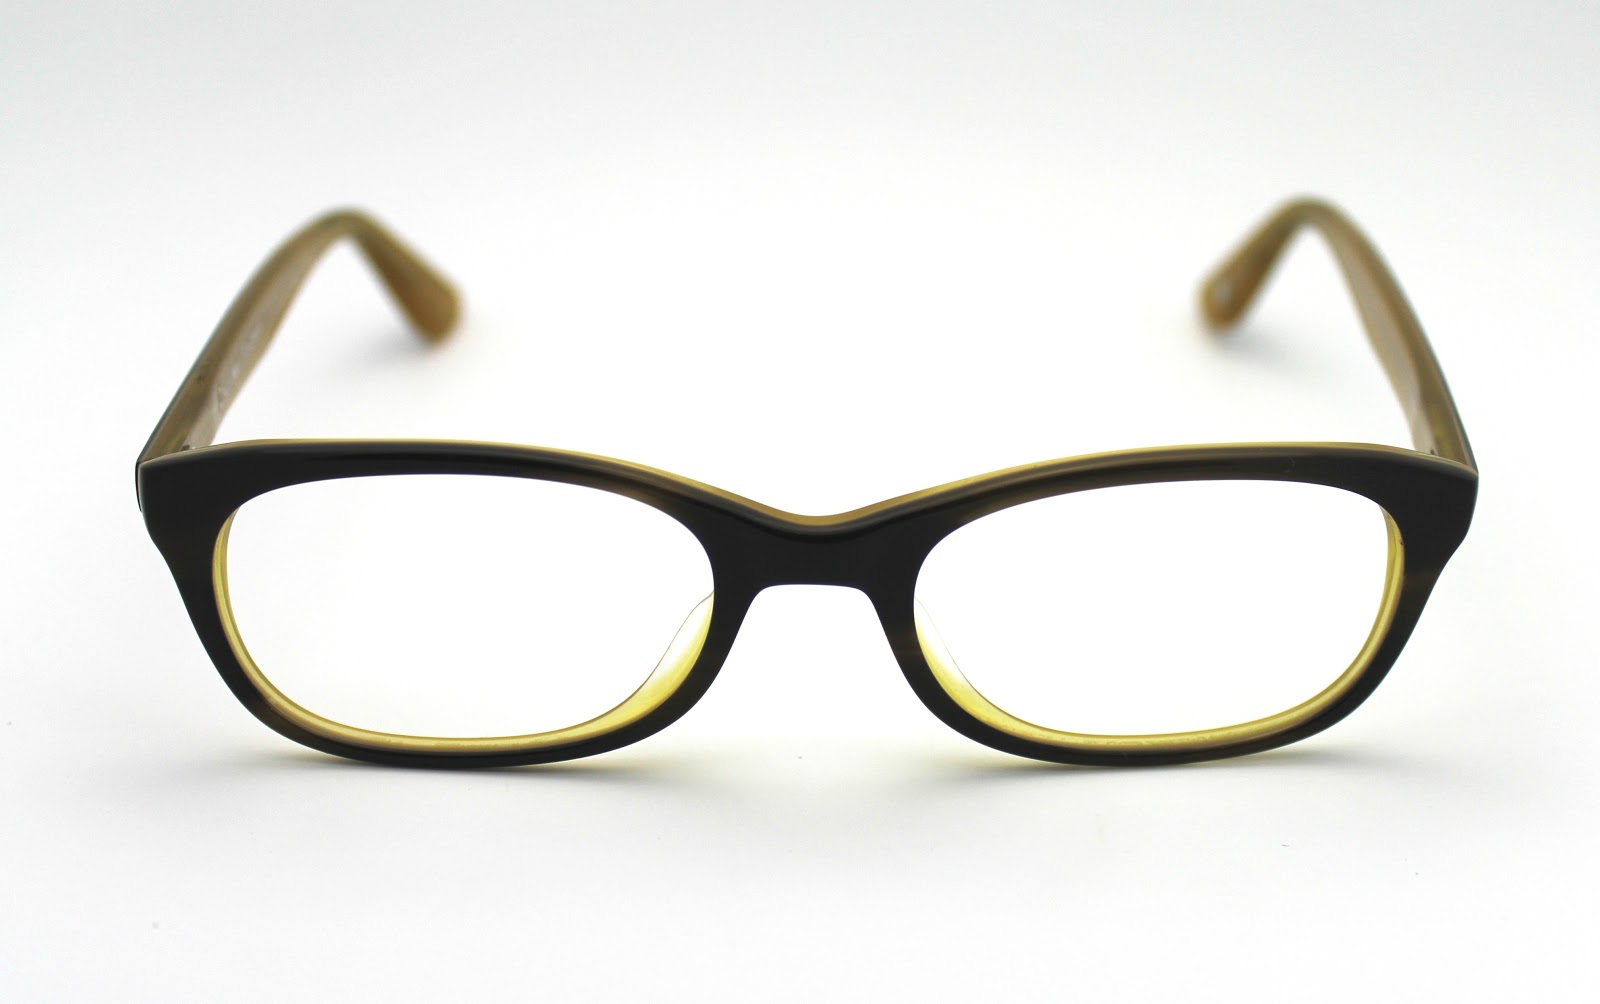 SPECTACLE LOVES YOU.: Paul Smith Spectacles: Dandee Frames Now at ...